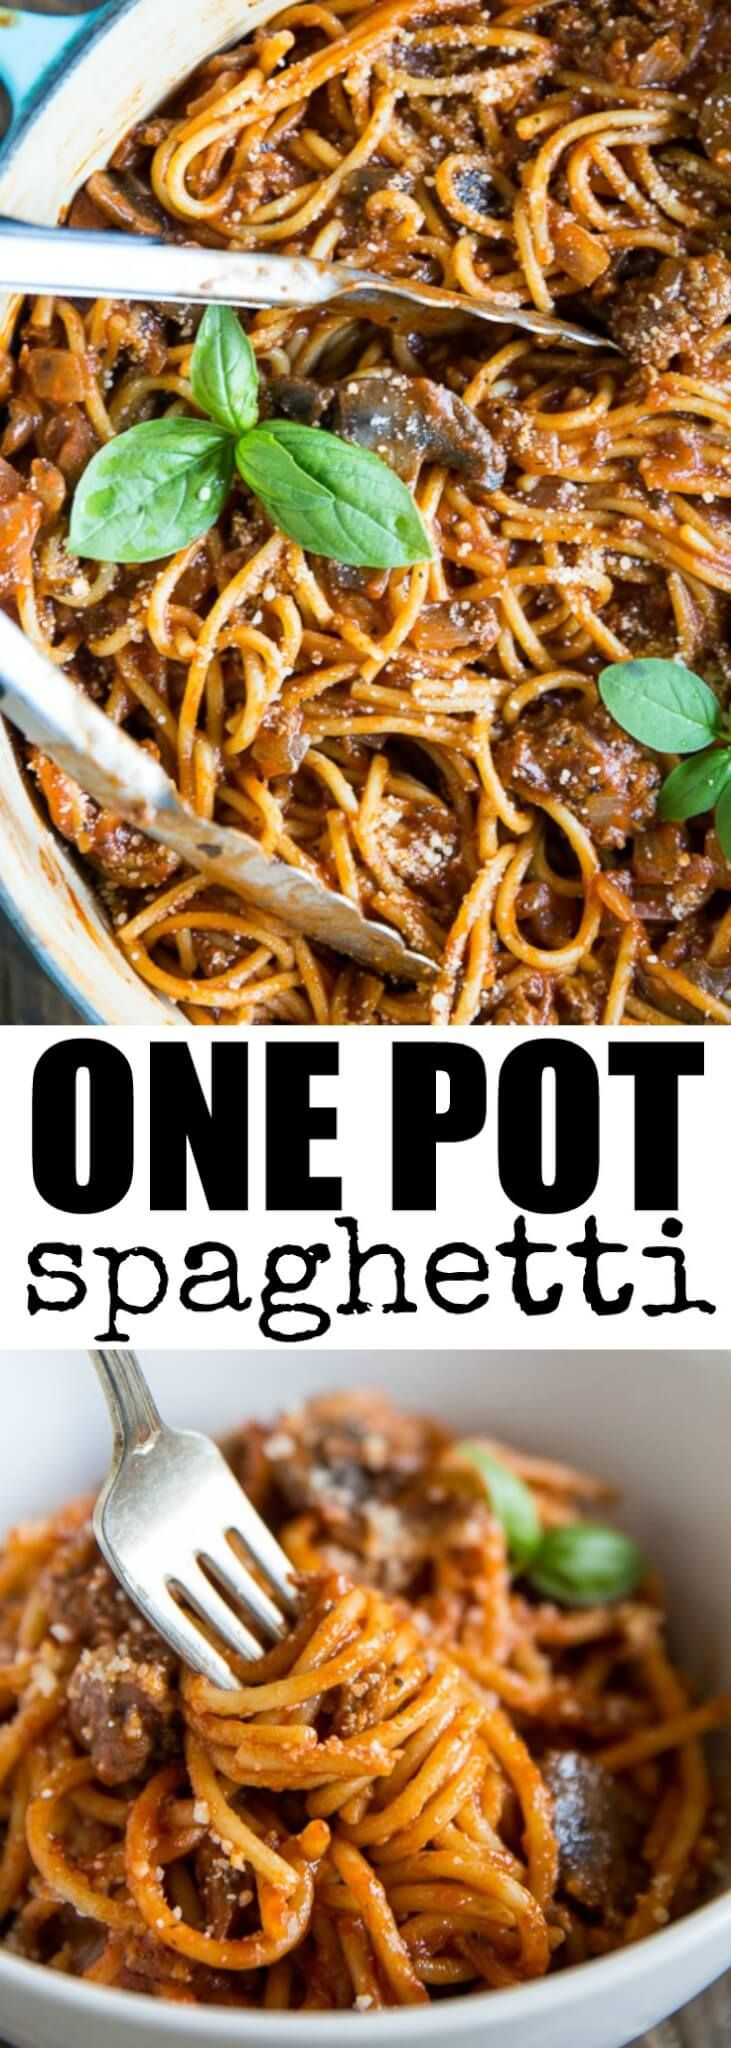 This delicious, easy One Pot Spaghetti is perfect for busy weeknights! The noodles go right in the pot uncooked. Make it with beef, sausage, or both. via @culinaryhill